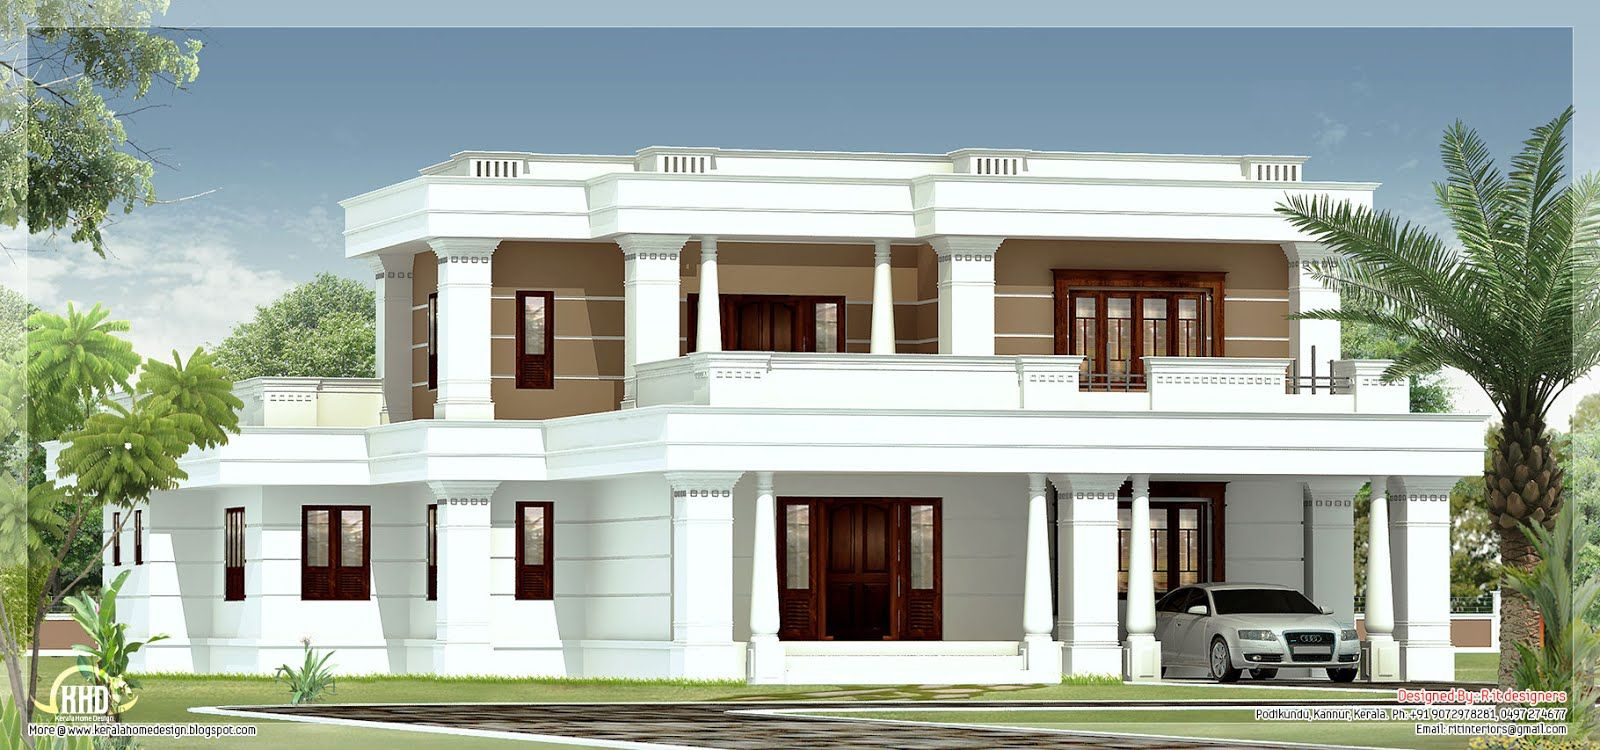 Flat roof homes designs november 2012 kerala home for Flat roof elevation